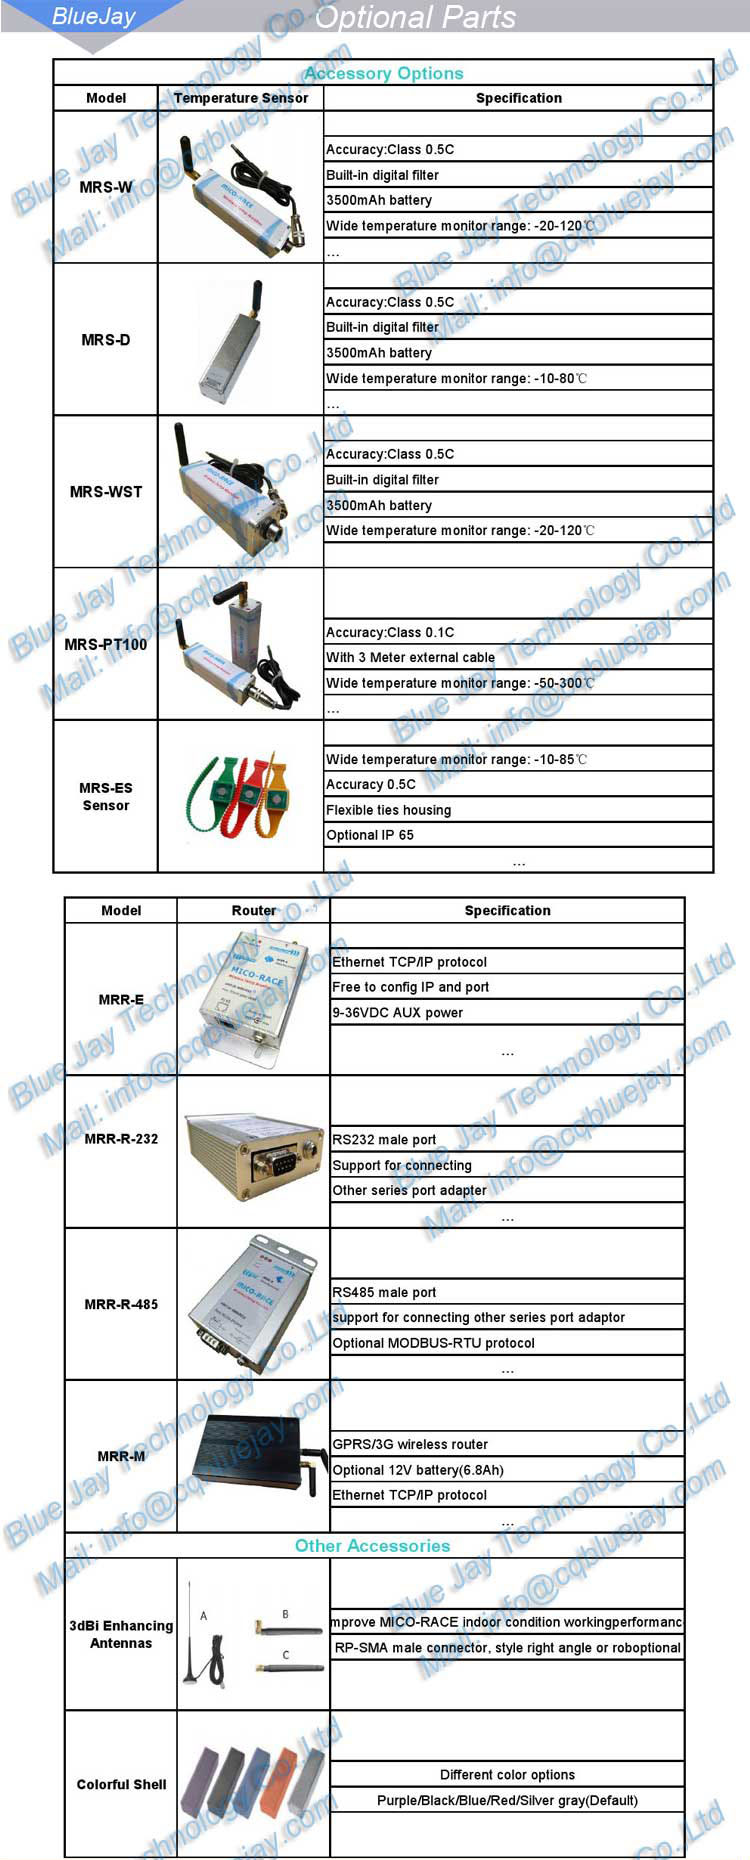 MRS-TH-D 433MHz internal probe wireless temp and humidity sensors, fruit transport freezer monitoring system